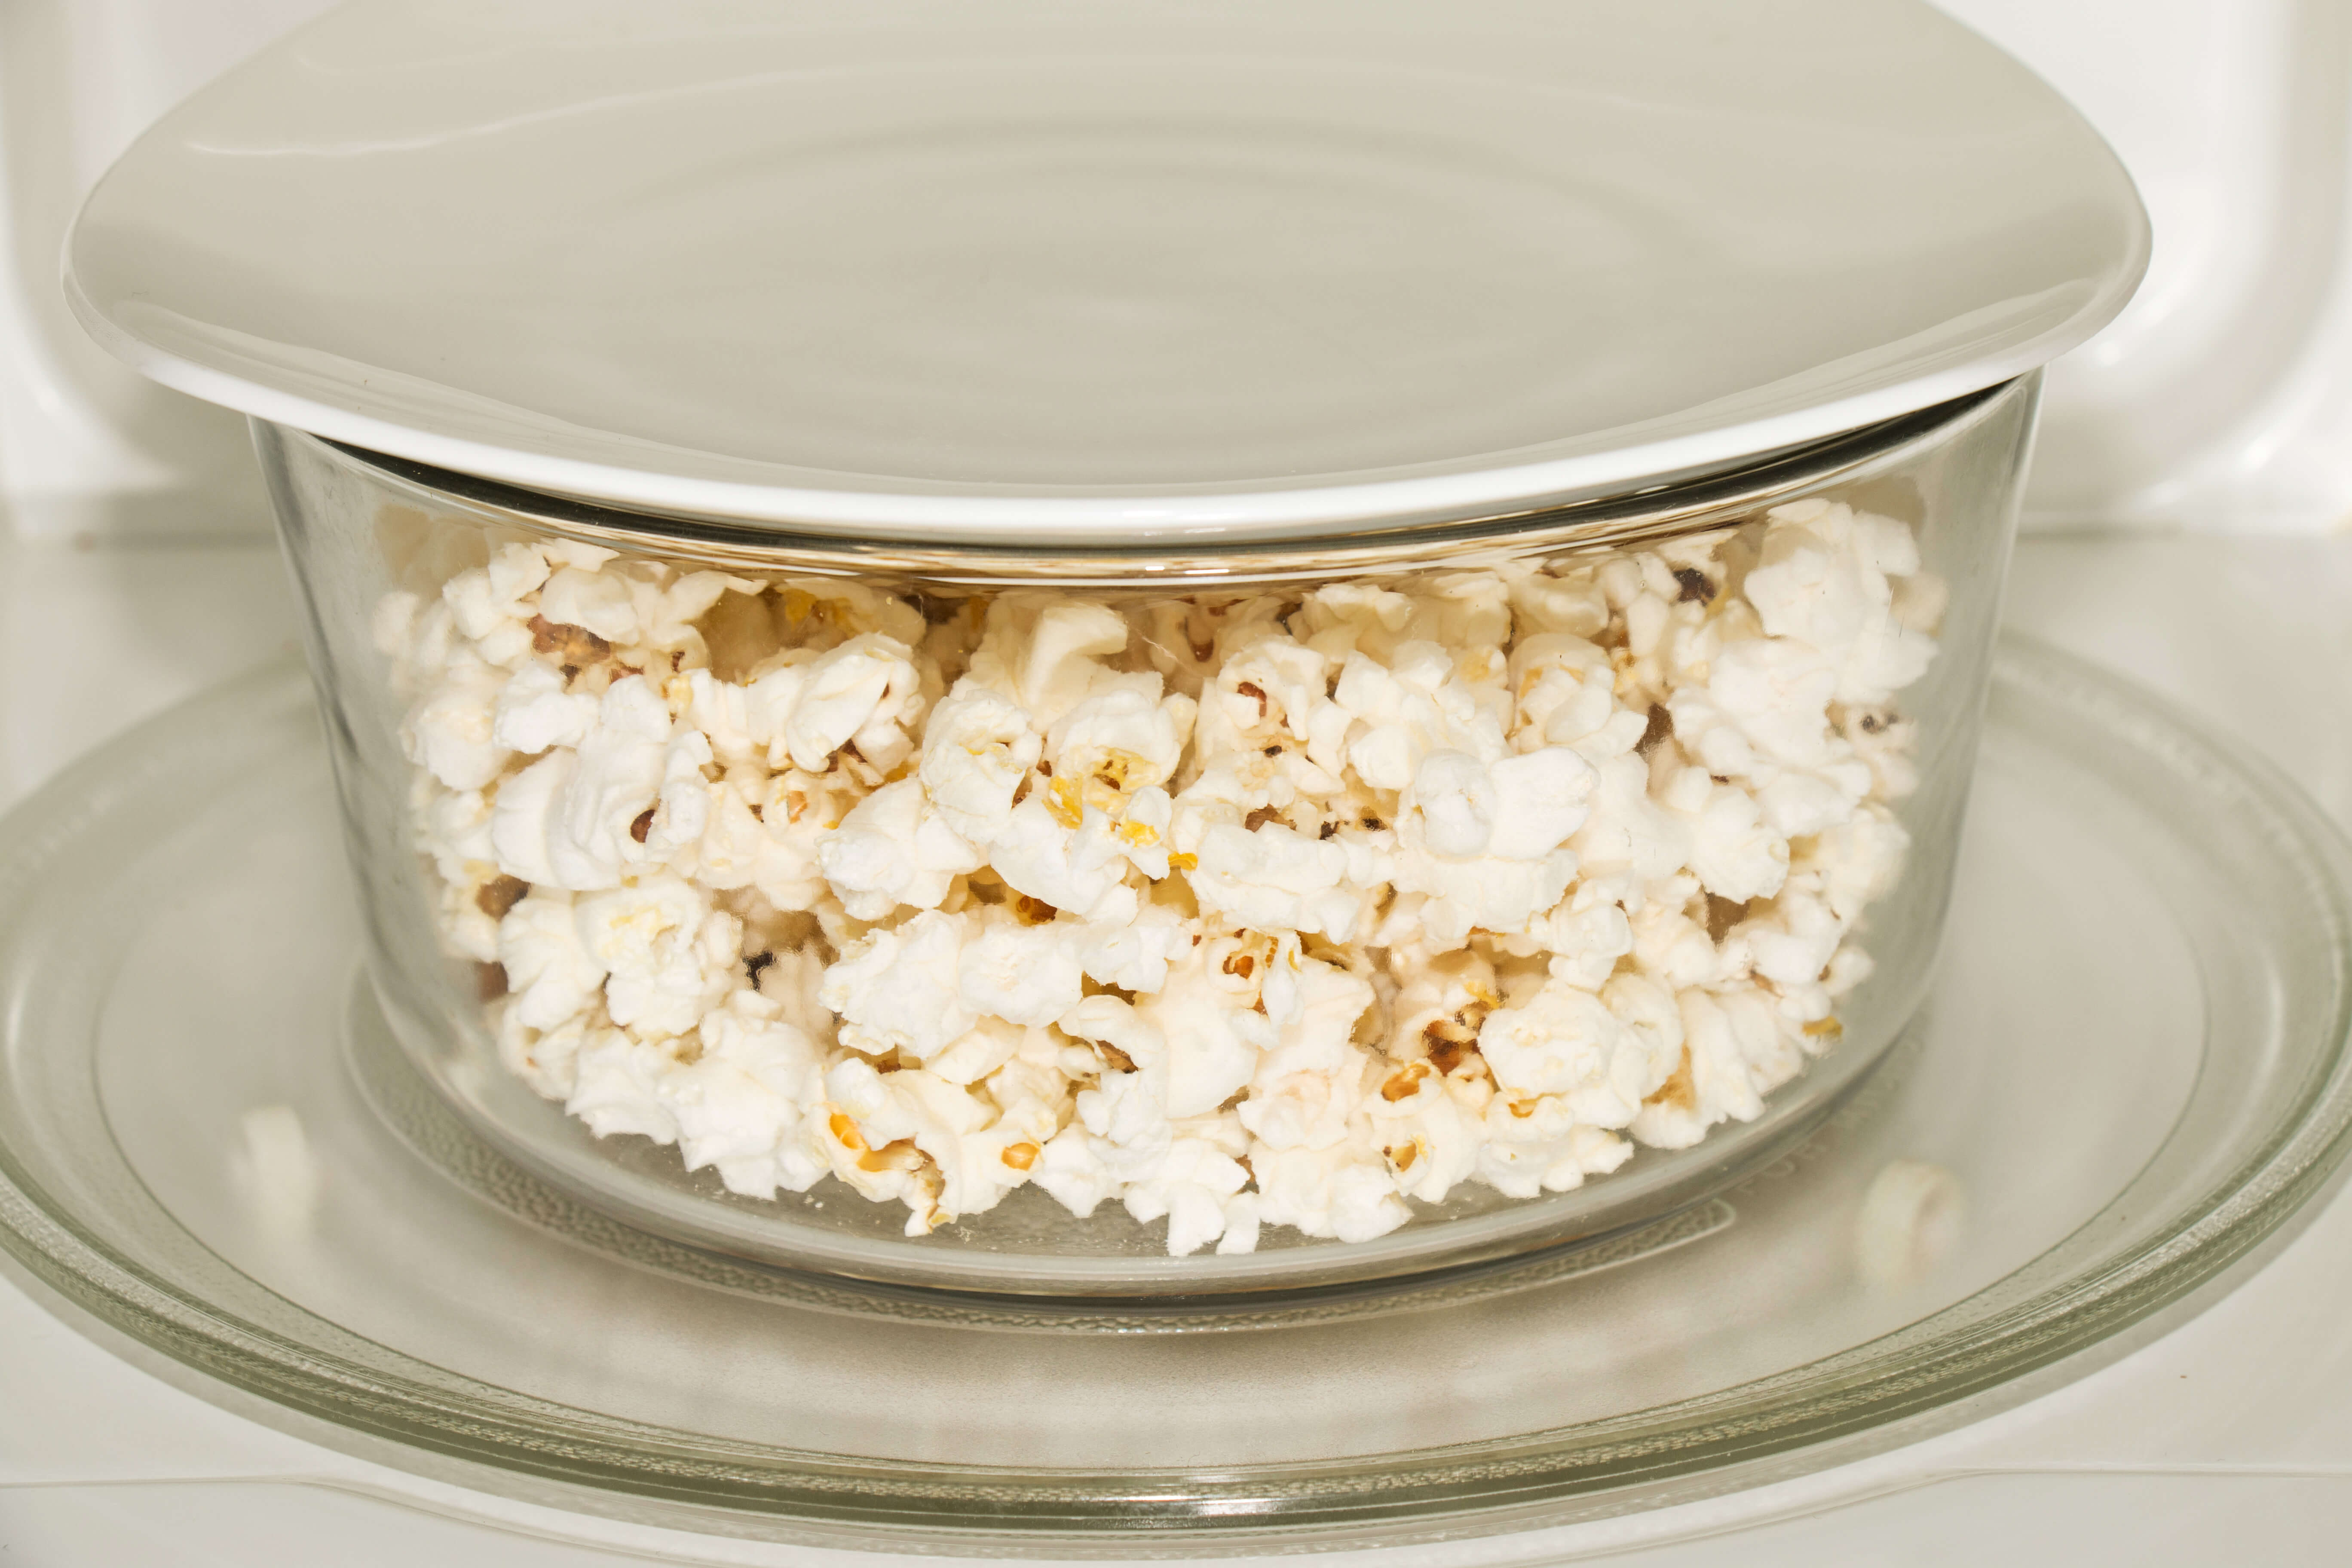 DIY Microwave Popcorn Tips